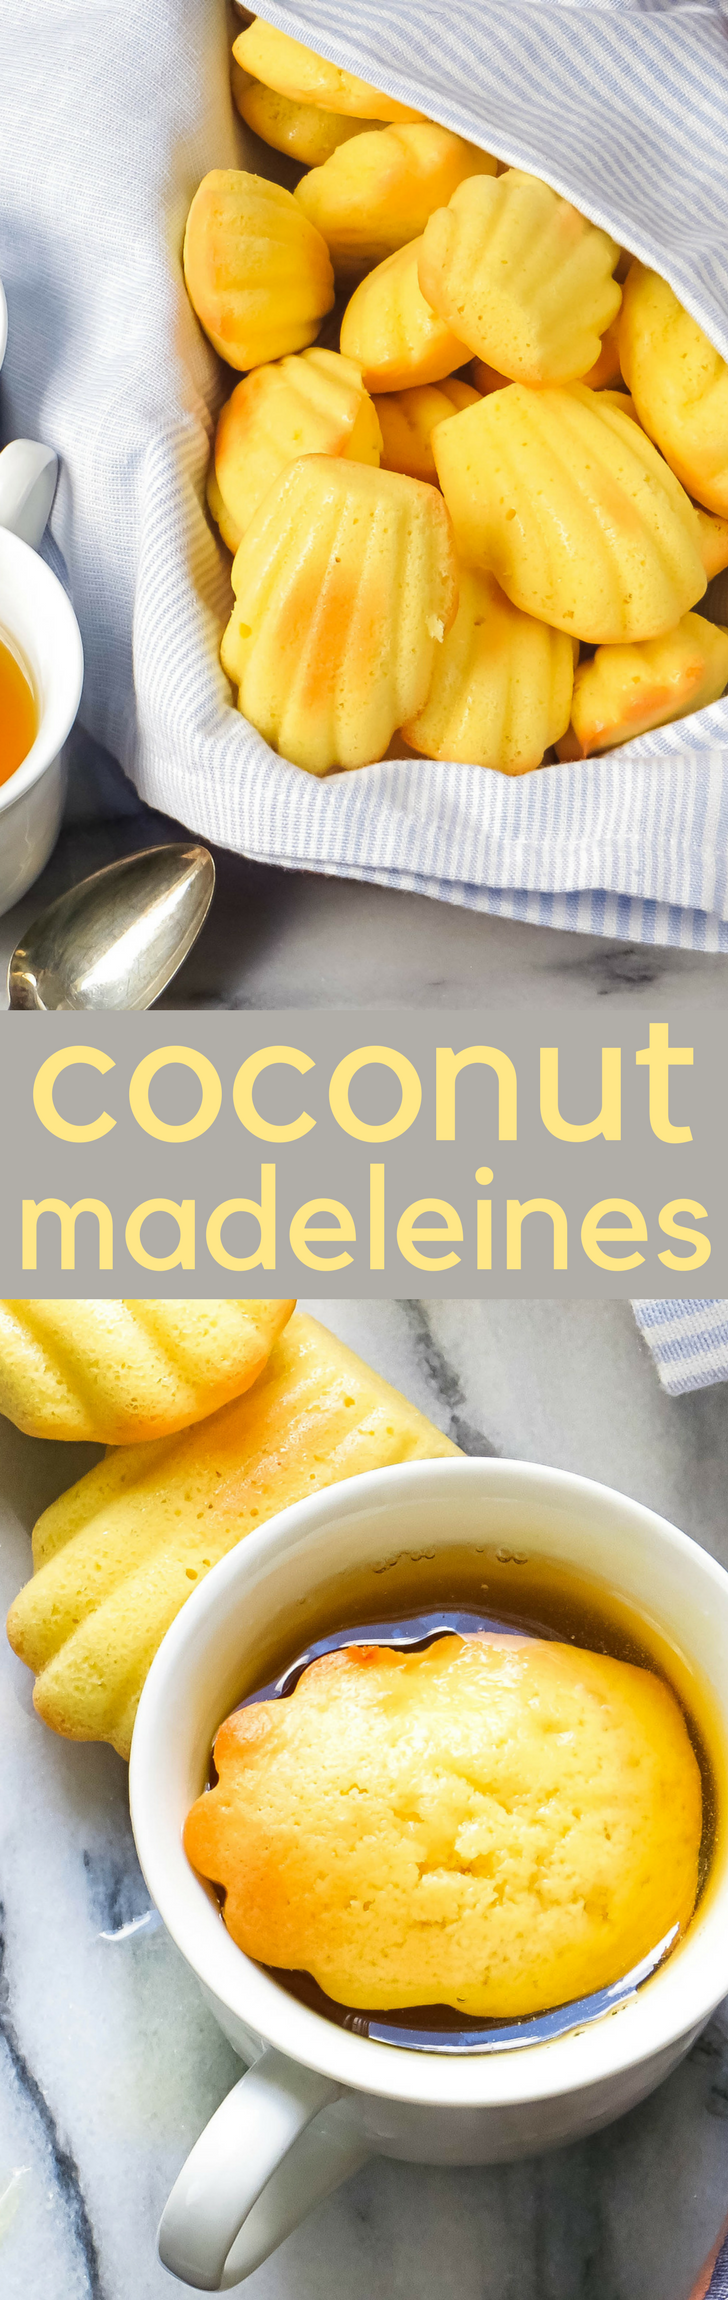 This authentic madeleine recipe is an easy to make snack. A cross between sponge cake and cookie coconut madeleines go great with tea! #cookies #christmascookies #madeleines #coconut #christmas #holidaycookies #dessert #desserts #spongecake #proust #madeleinerecipe #